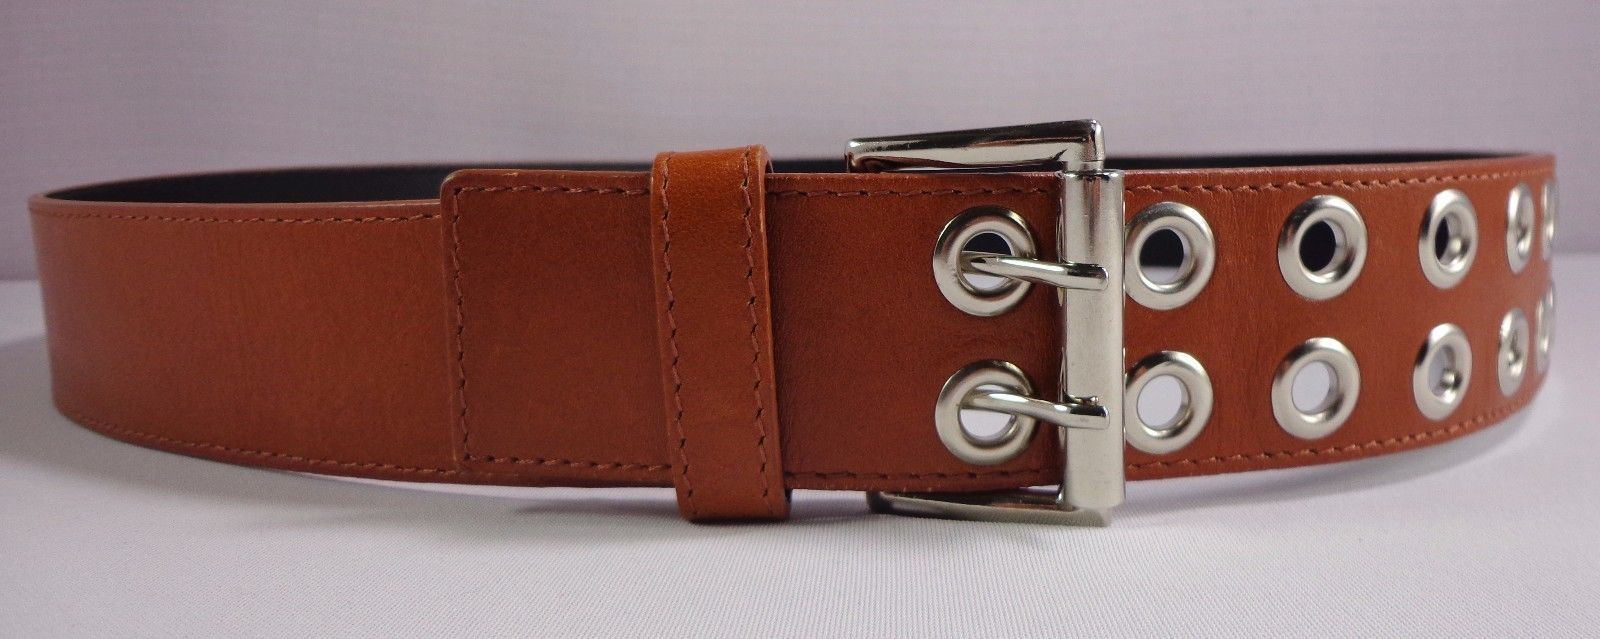 Banana Republic Womens Brown Leather Belt Double Prong Size L Large